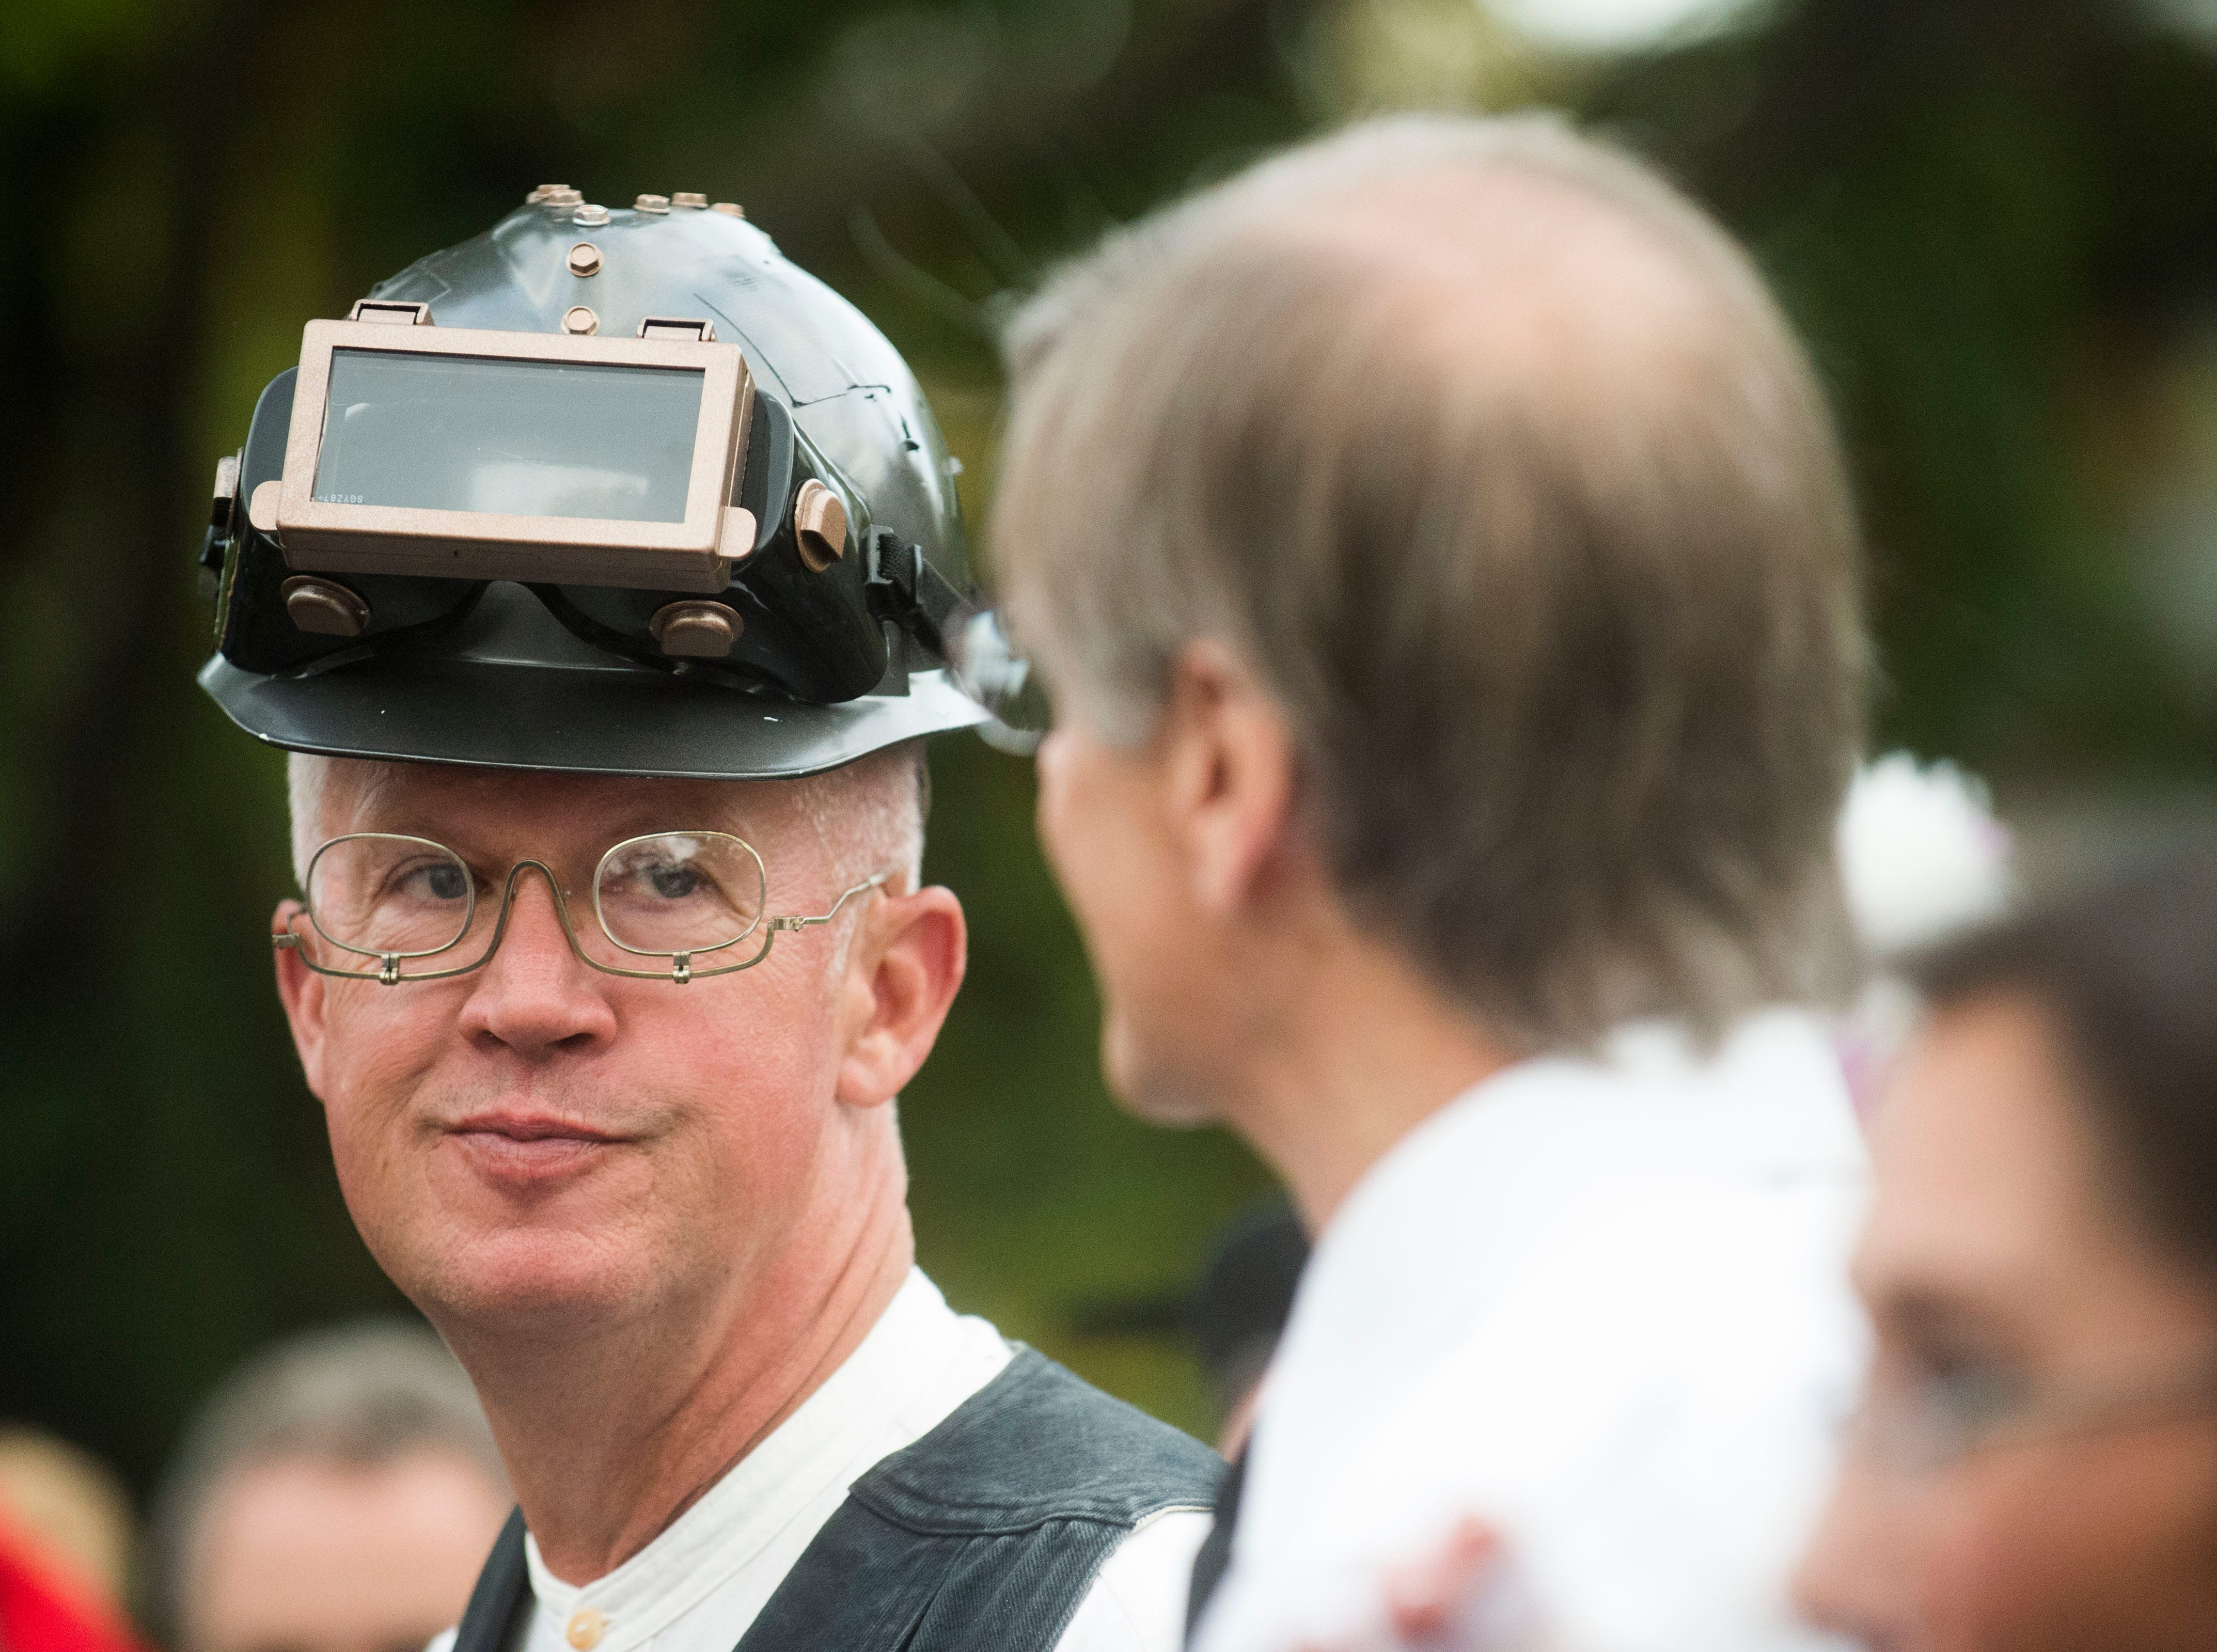 Charlie Harley, dressed as a steam punk engineer, speaks with friends at the Fourth and Gill neighborhood Halloween party in Knoxville, Wed. Oct. 31, 2018.